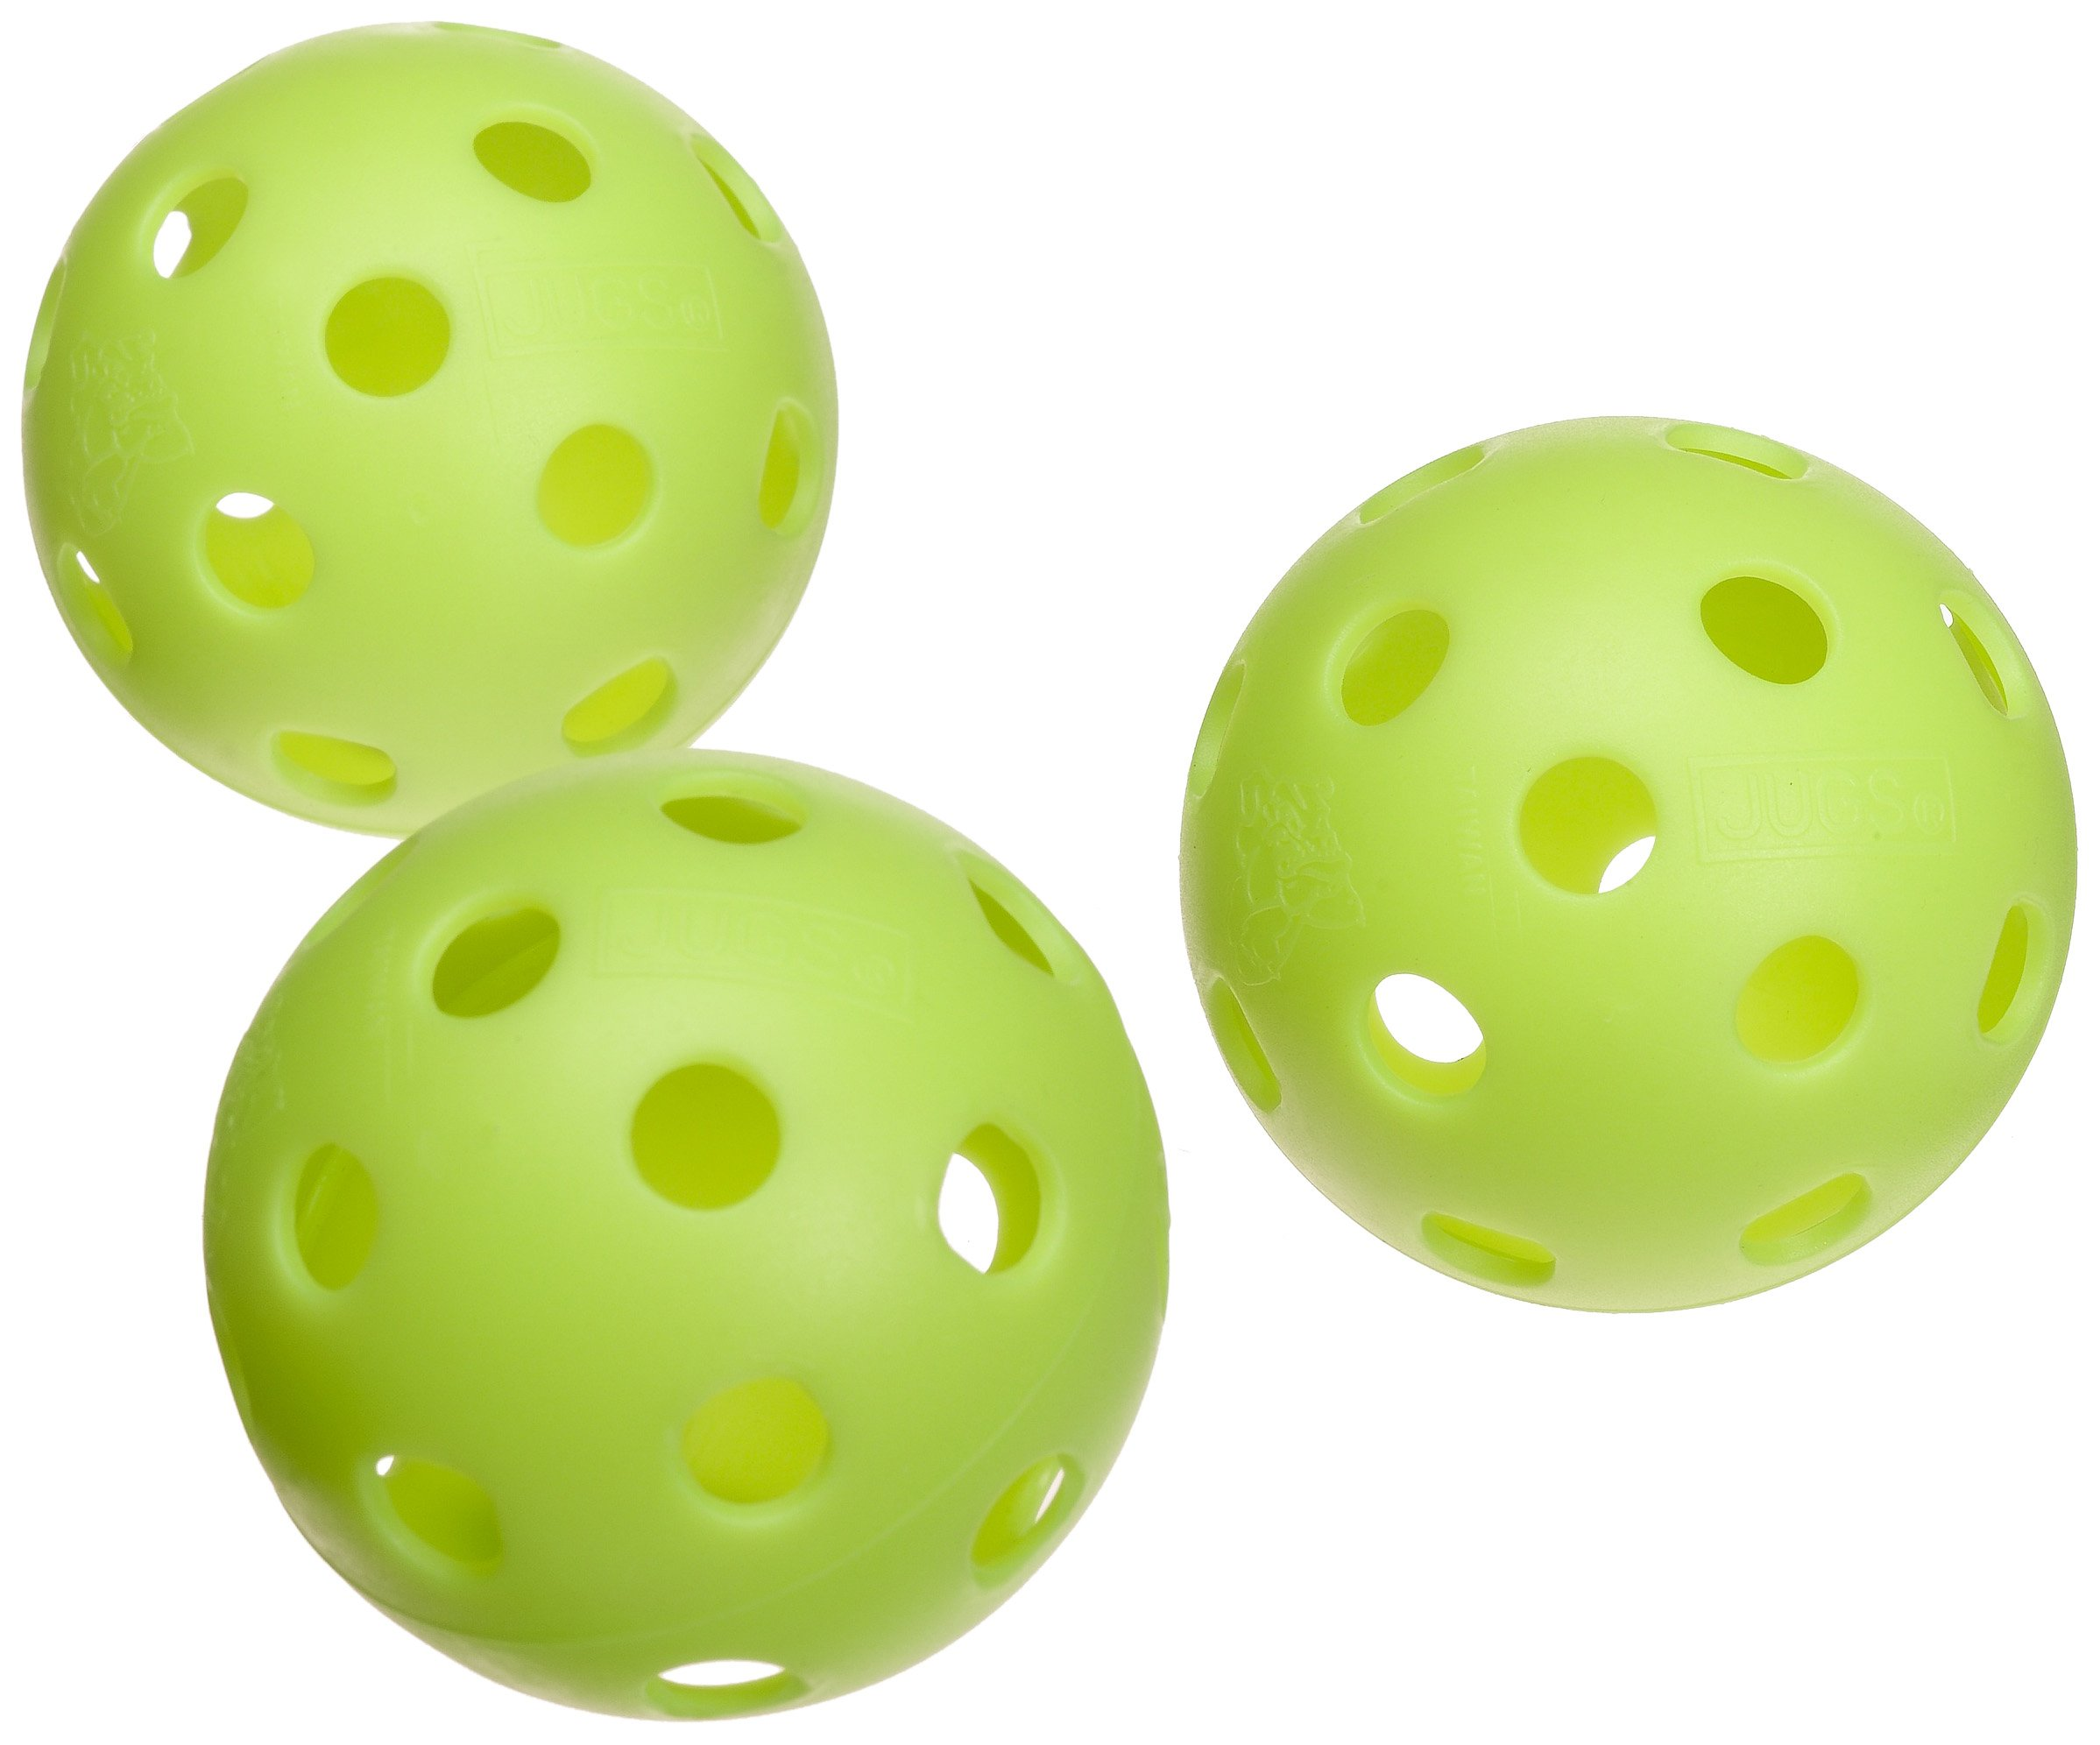 Jugs Vision-Enhanced Green Poly Baseballs (One Dozen)